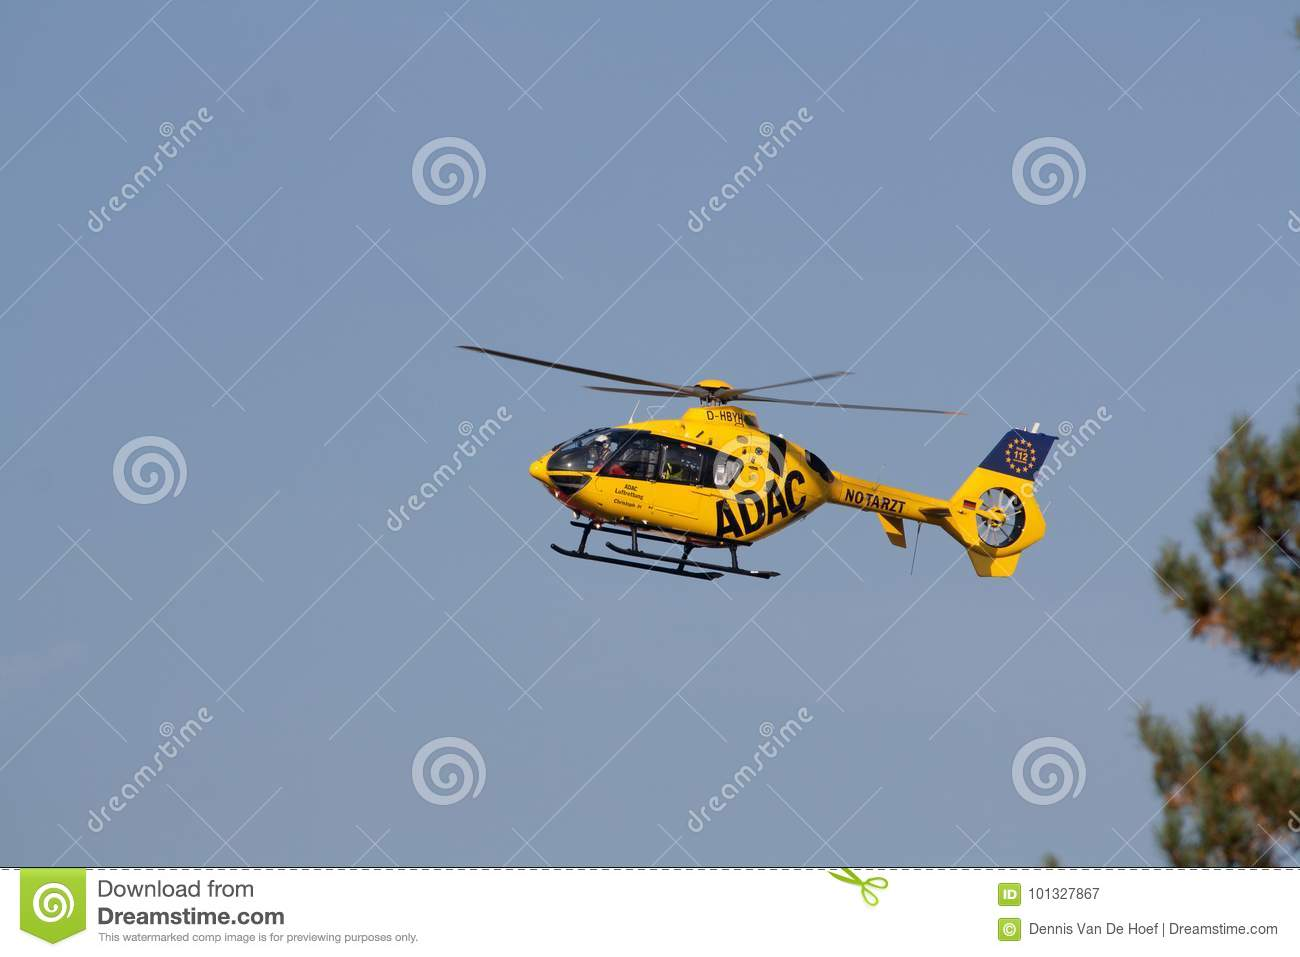 Berlin - 30.09.2017: Rescue helicopter of ADAC, Christoph 31 sea. Transportation, germany.